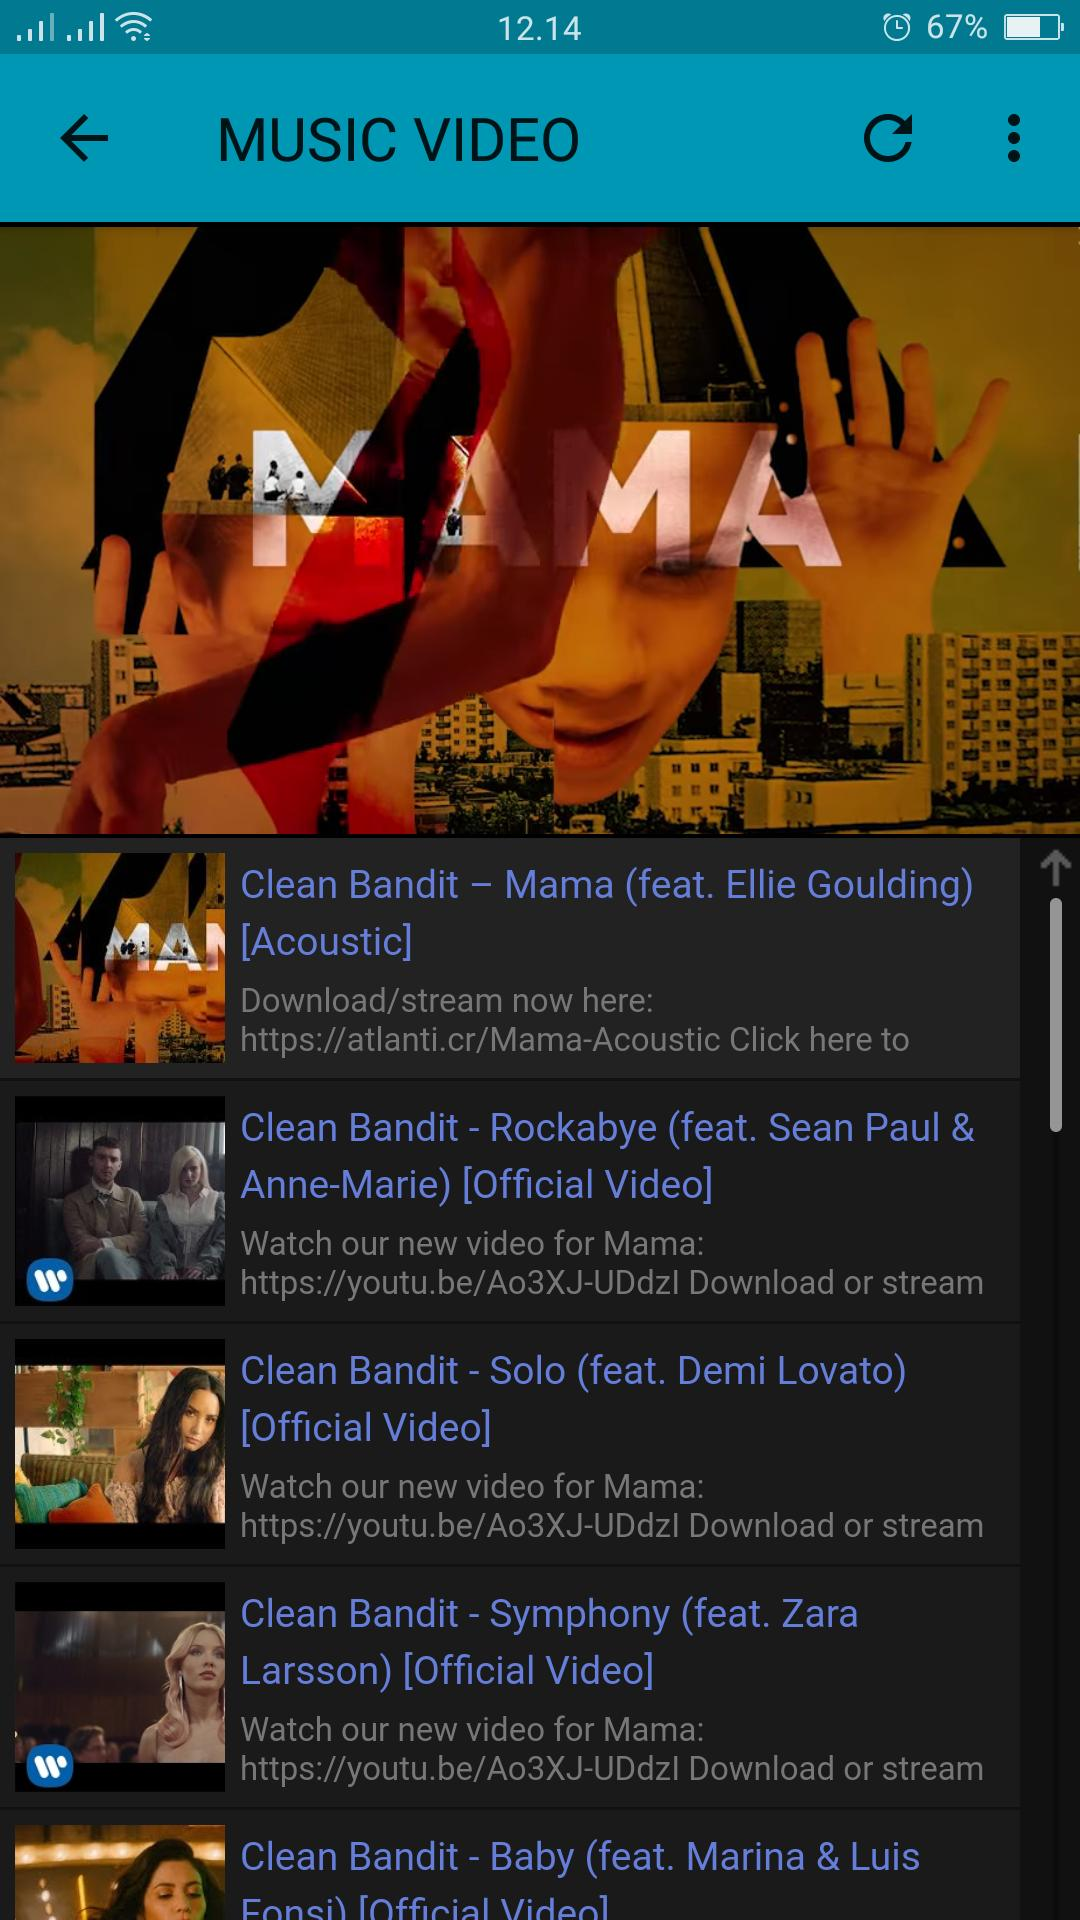 Clean Bandit Lyrics for Android - APK Download